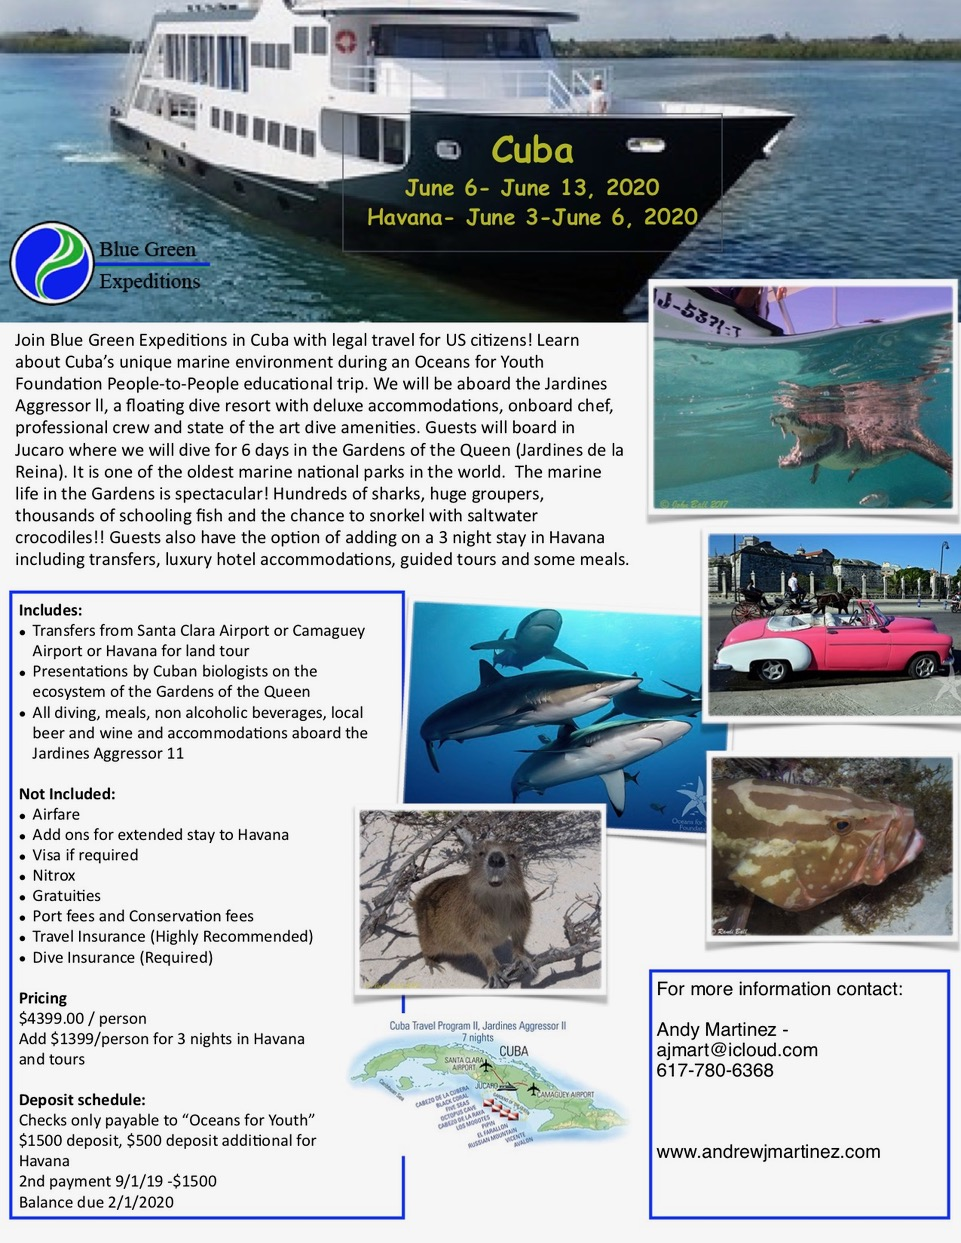 Cuba Expedition 2020 Informational image